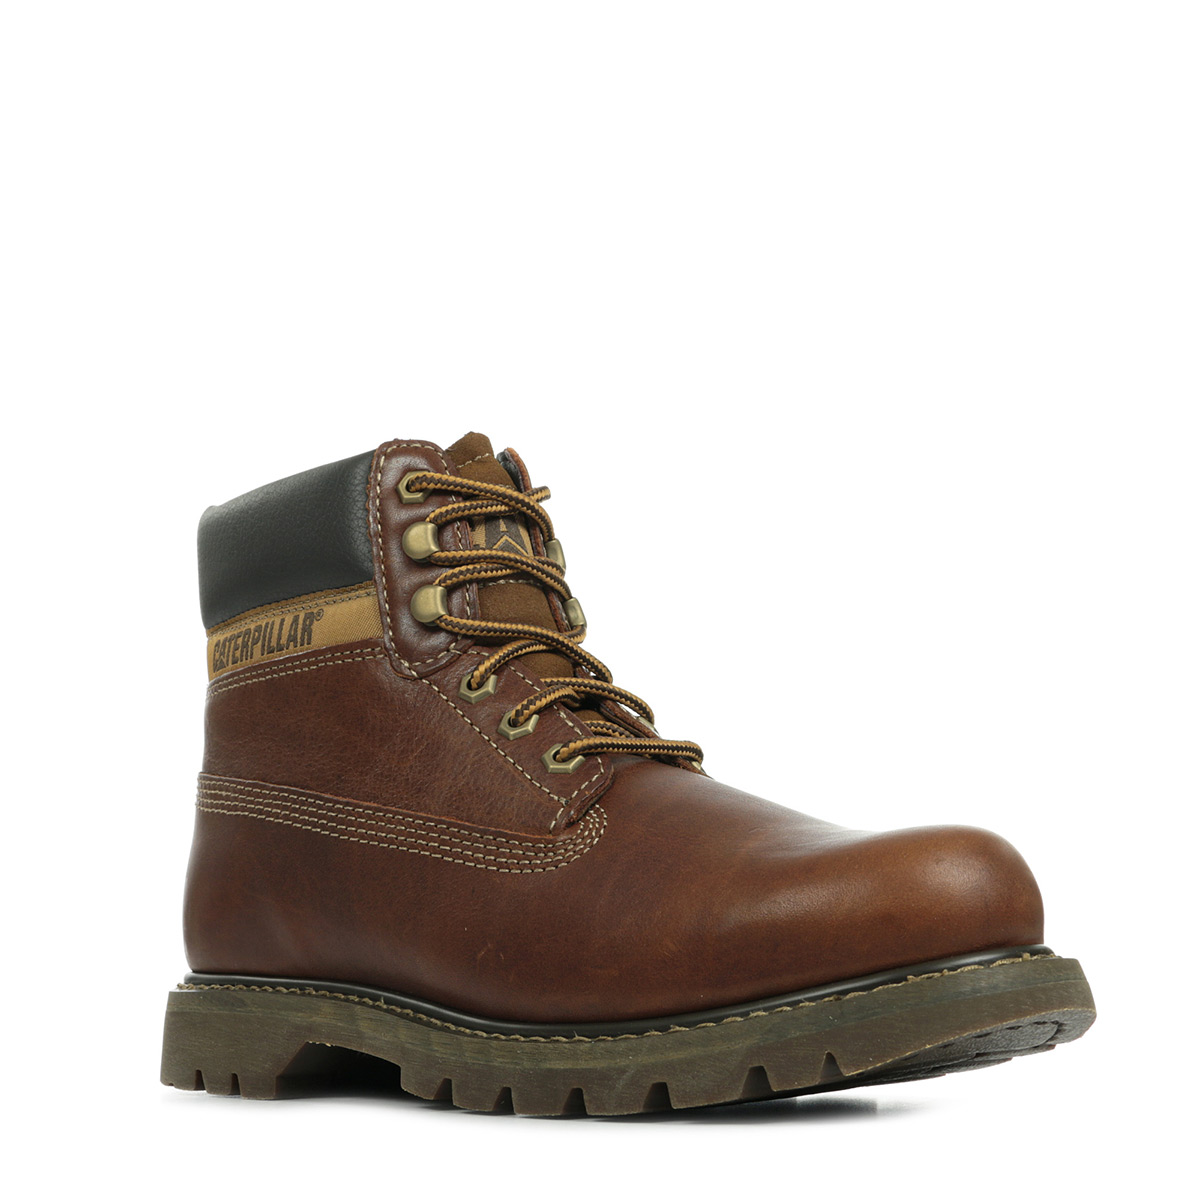 68eb59fbbce55e Chaussures Boots Caterpillar homme Colorado taille Marron Cuir ...